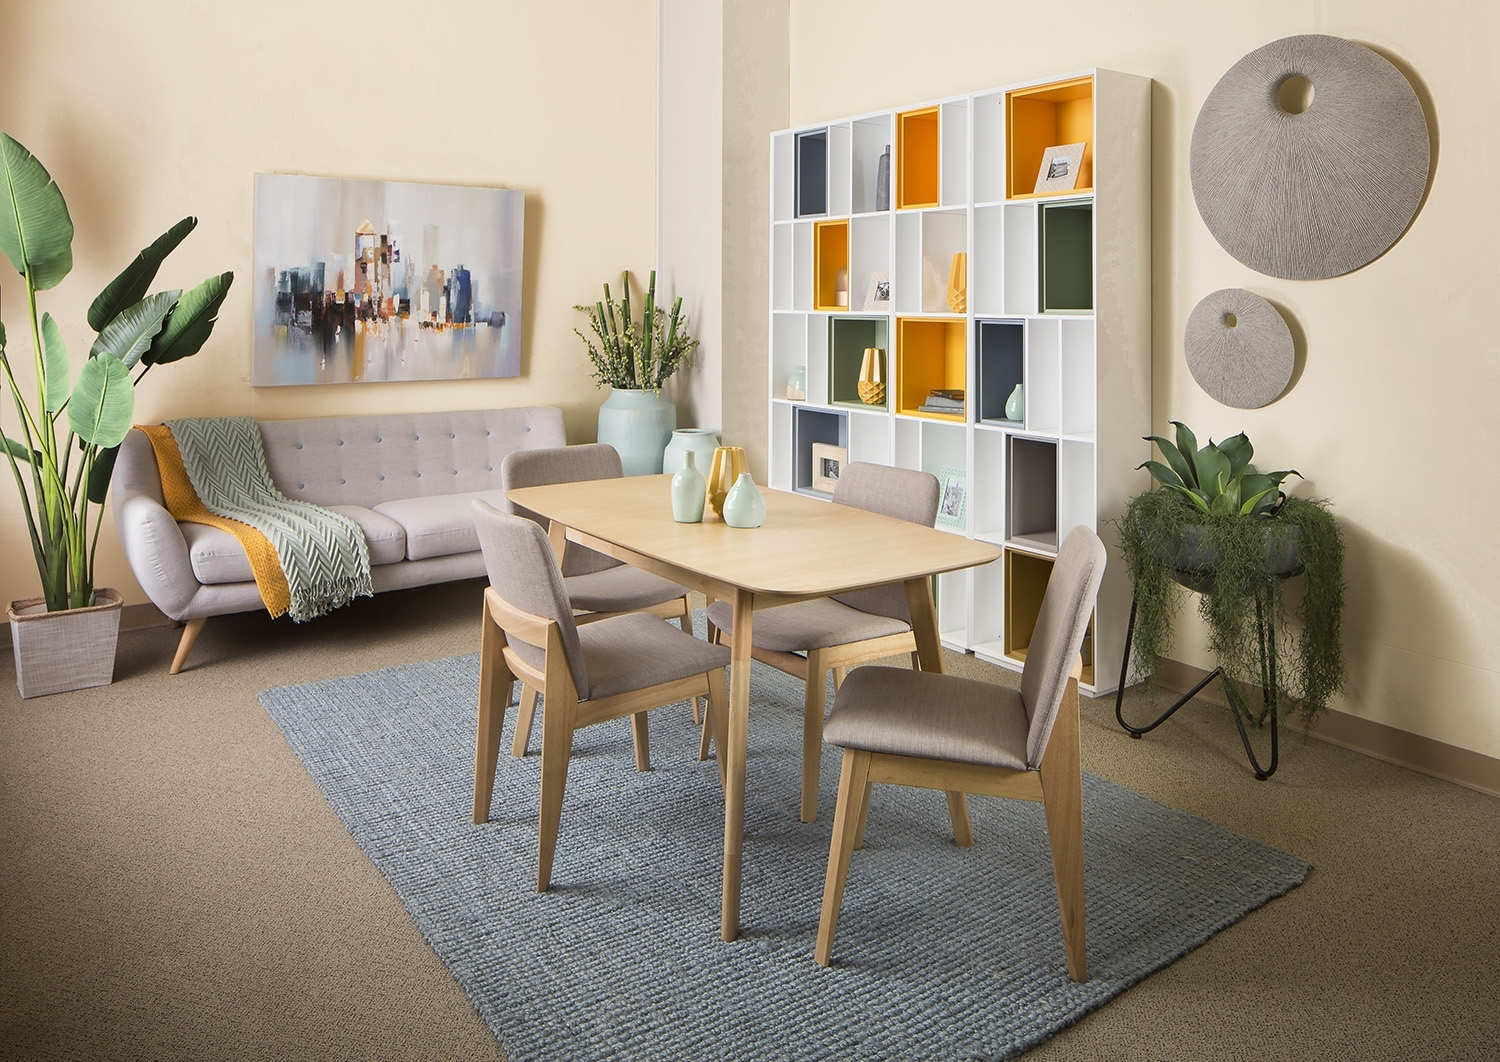 Margarita | Dining Furniture/modern |Dezign Furniture Regarding Jelly Bean Coffee Tables (Image 23 of 30)